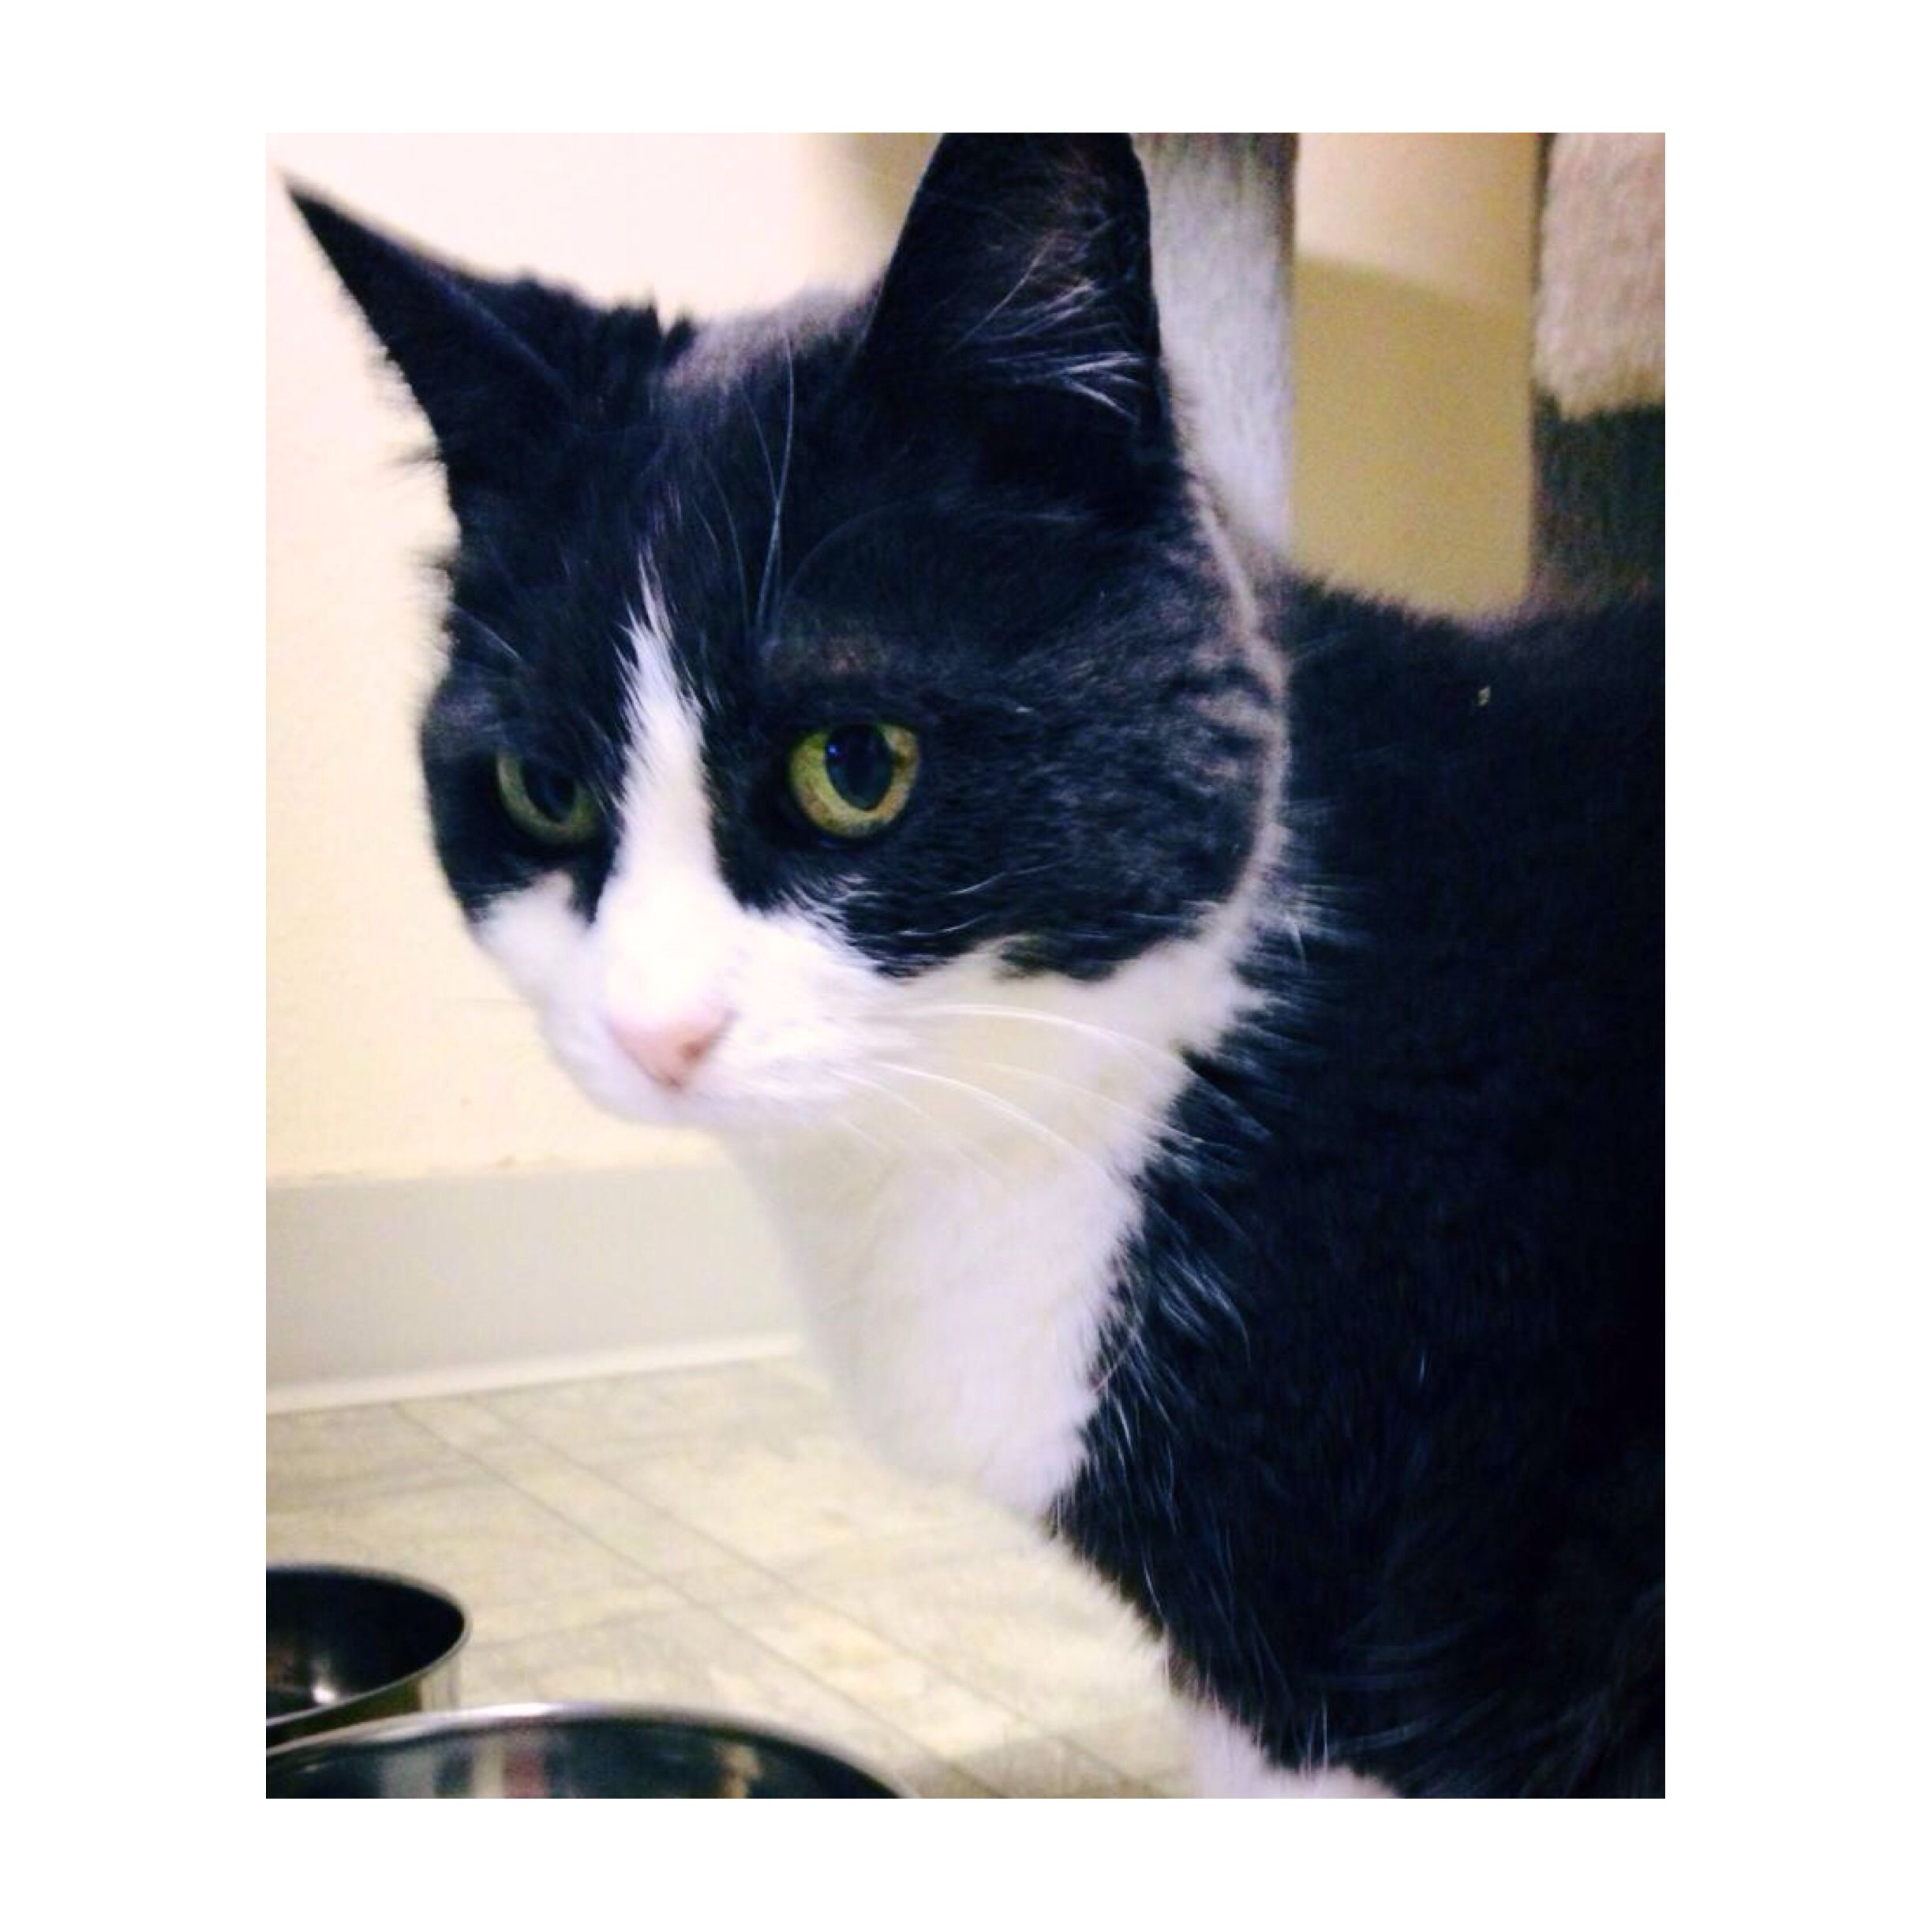 Priscilla Is Available For Adoption At Animal Aid Animal Aid 5335 Sw 42nd Ave Portland Or 97221 503 292 6628 Fax 503 296 4957 Adoption Cats Pets